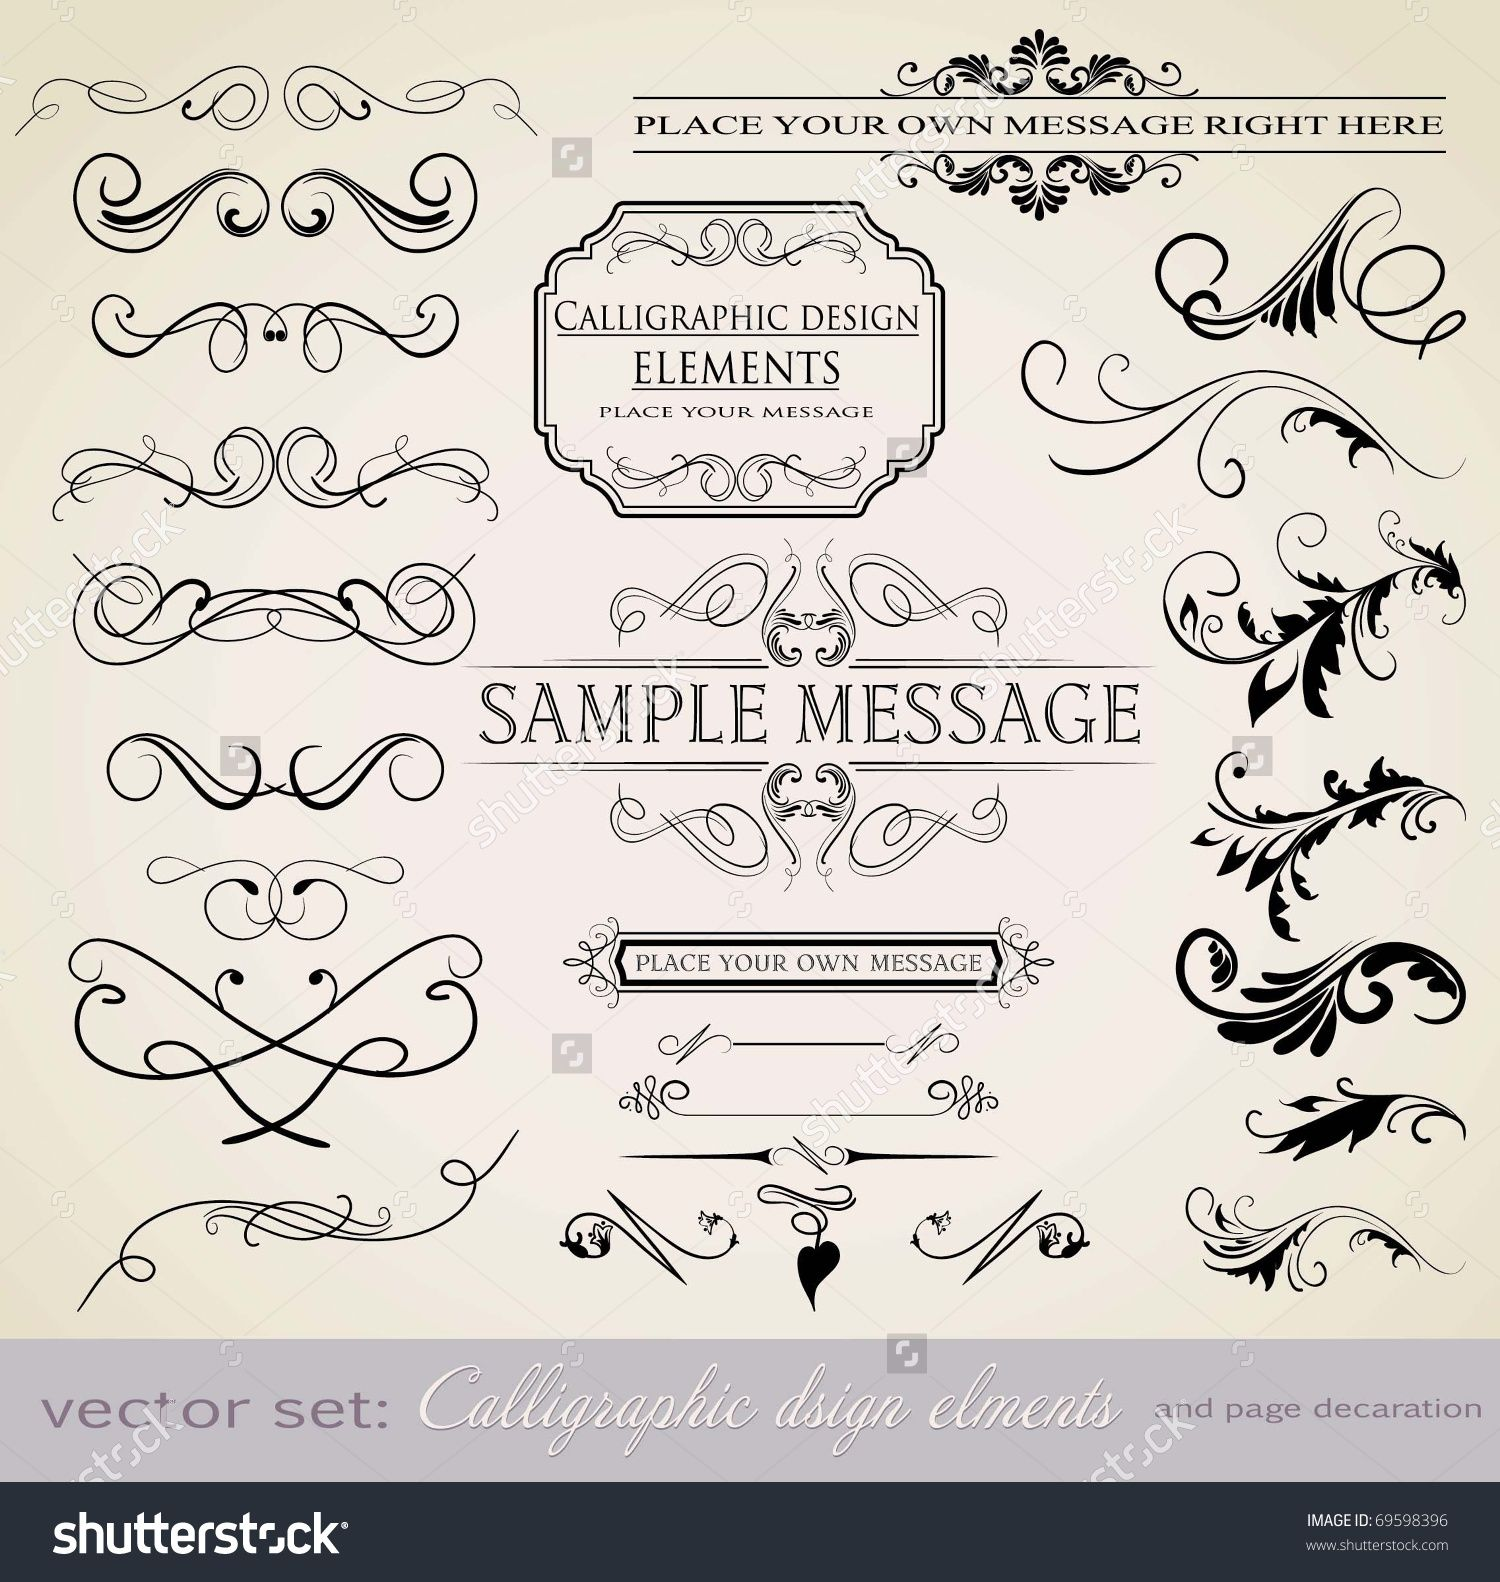 Vector Set: Calligraphic Design Elements And Page Decoration - Lots Of Useful Elements To Embellish Your Layout - 69598396 : Shutterstock